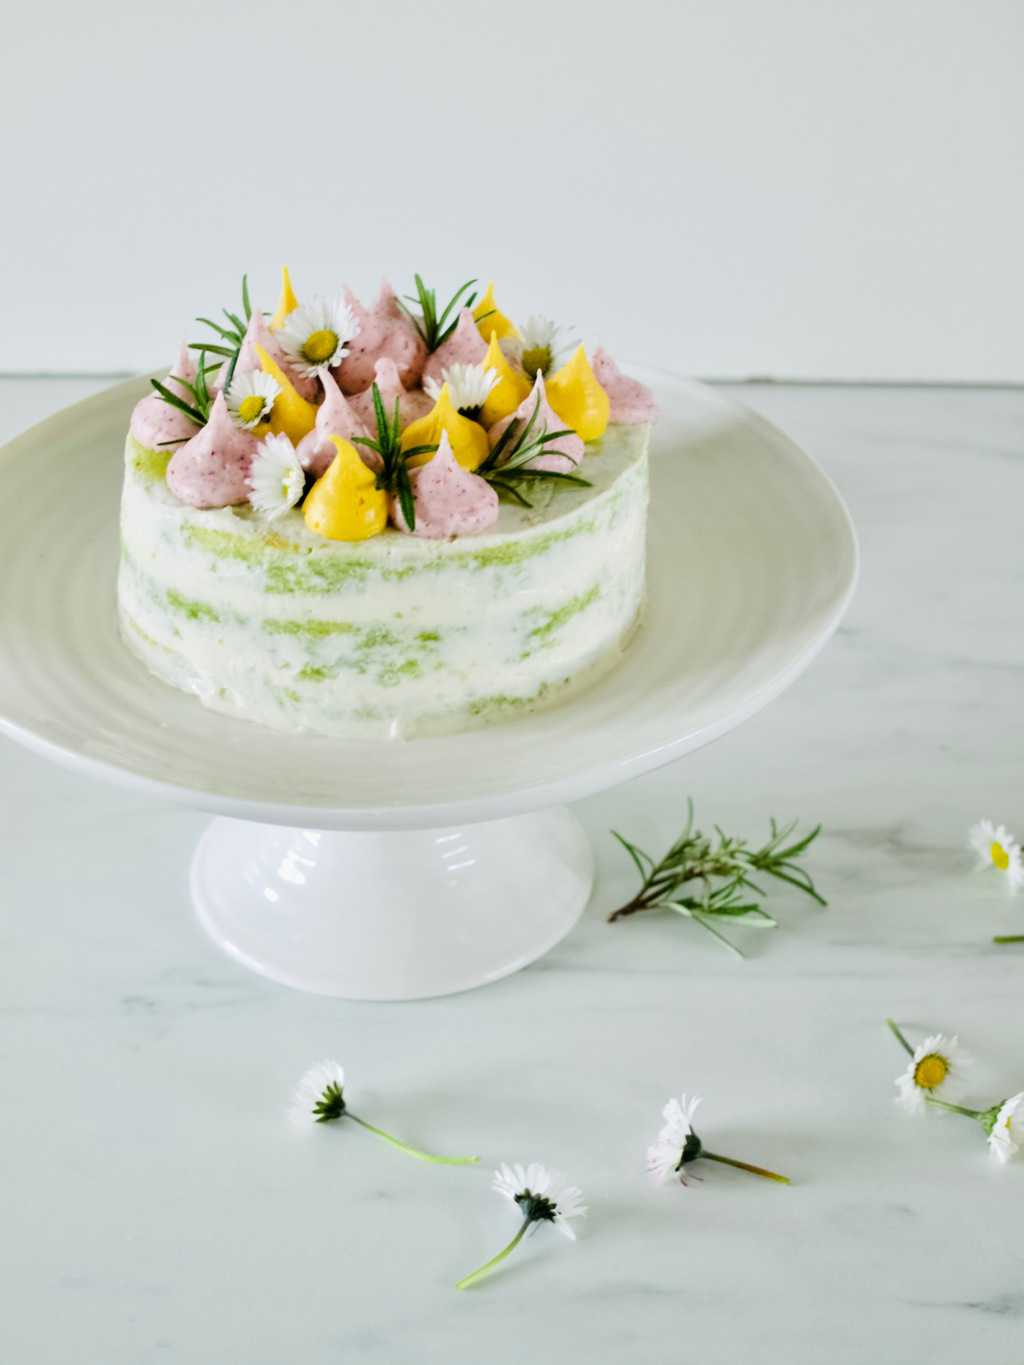 Spring-inspired celebration cake (with sweet peas) recipe